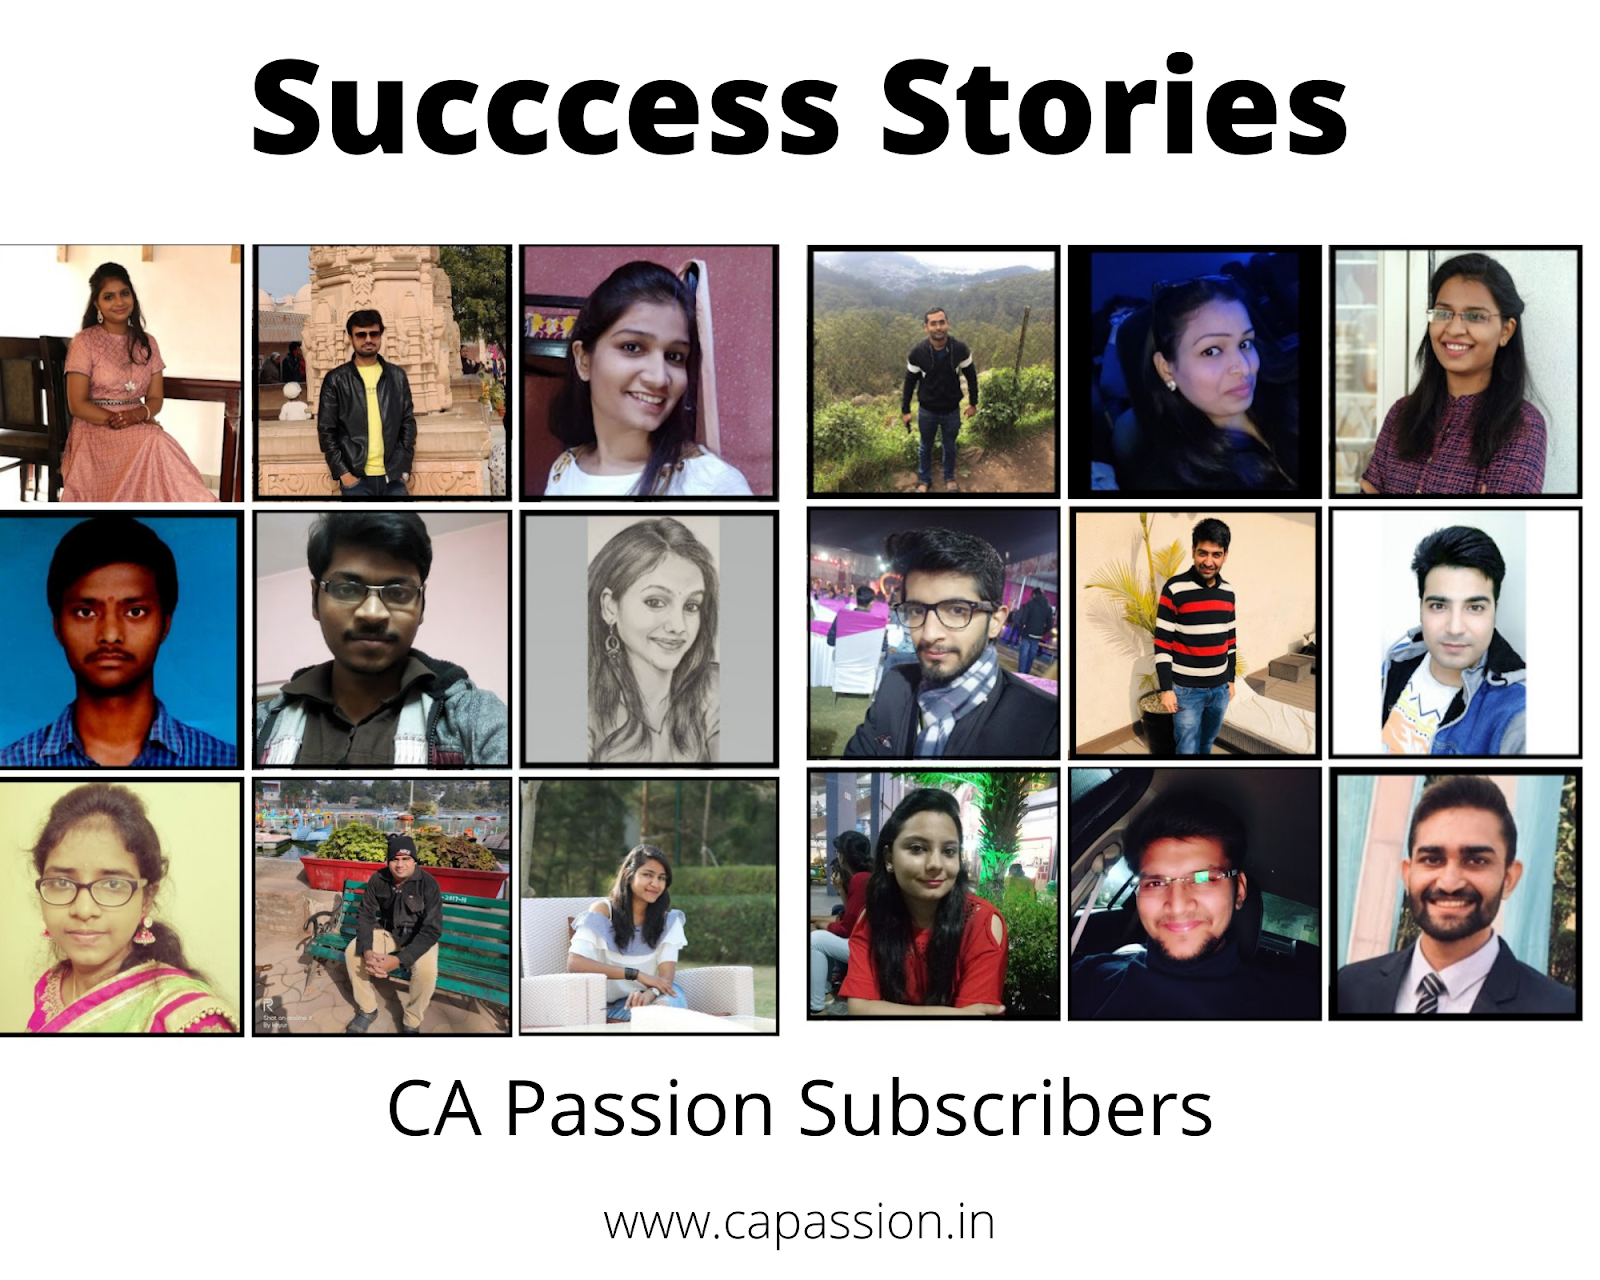 CA Passion - The Most Popular & Trusted website for CA Students & Members